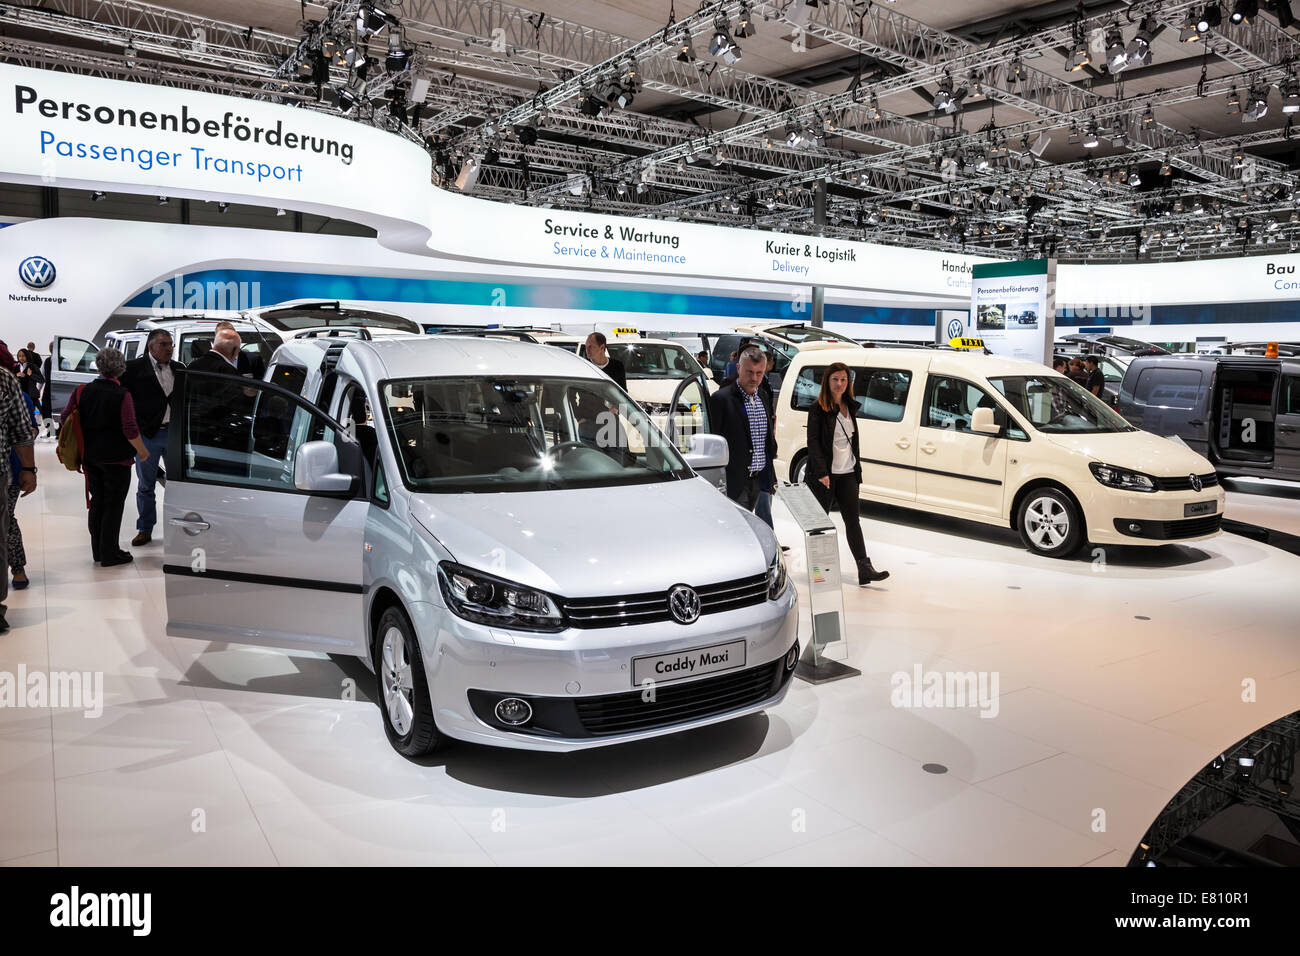 New VW Caddy maxi at the 65th IAA Commercial Vehicles fair 2014 in Hannover, Germany - Stock Image